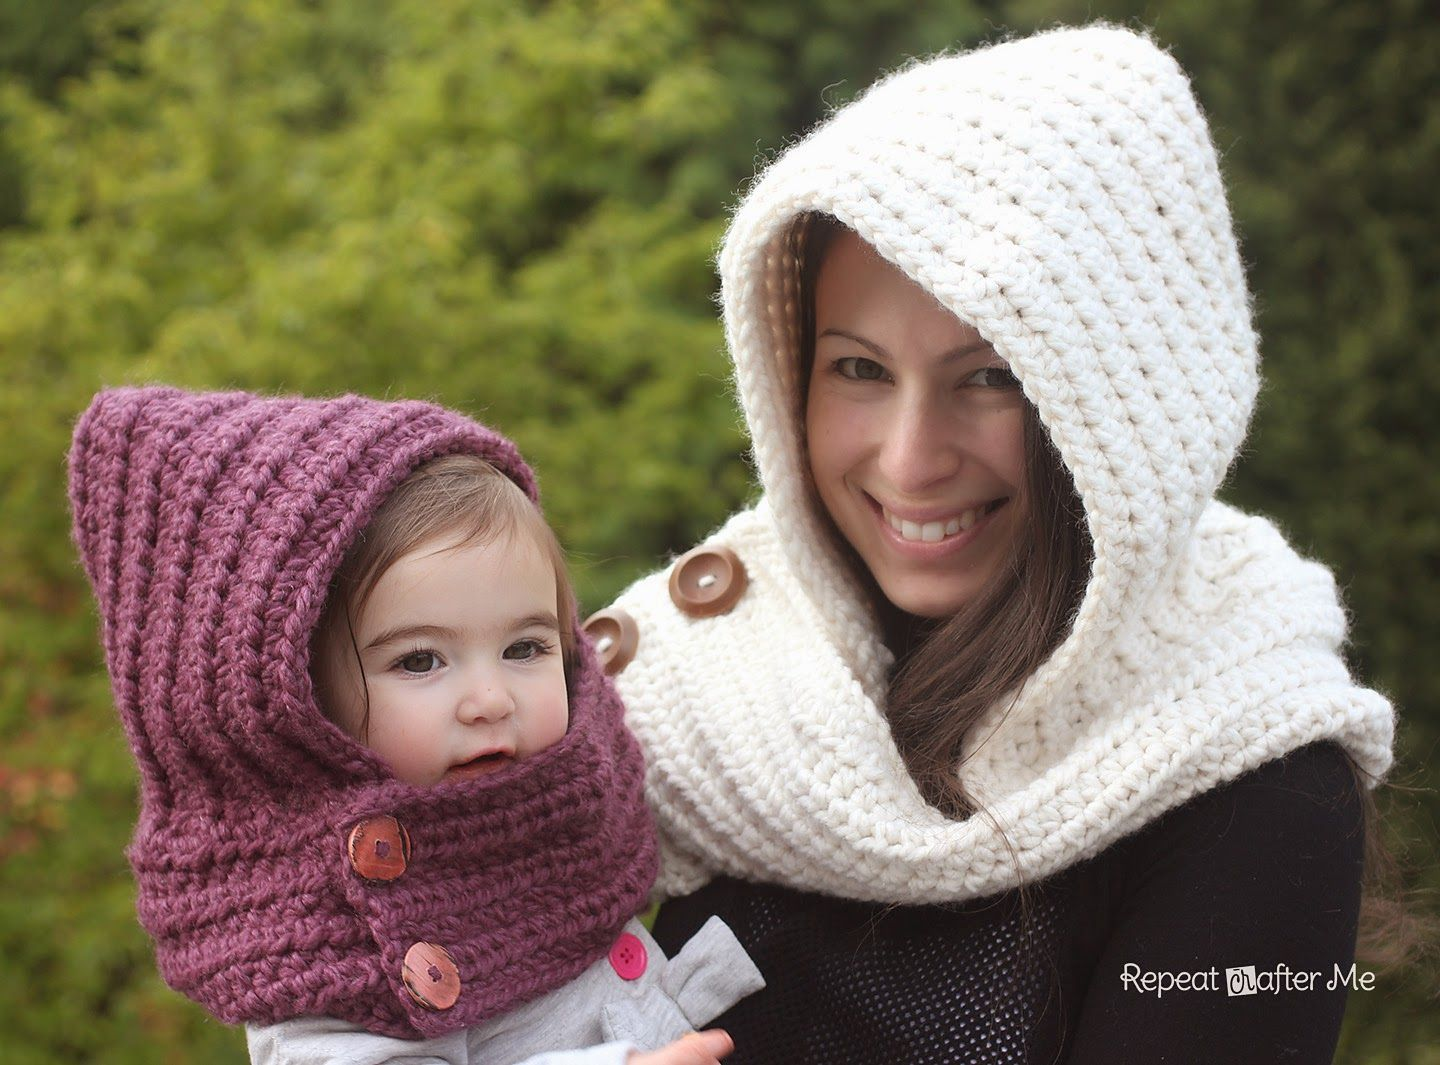 Hooded Cowl Knitting Pattern Ravelry : Hooded Crochet Cowl By Sarah Zimmerman - Free Crochet Pattern - Adult And Chi...